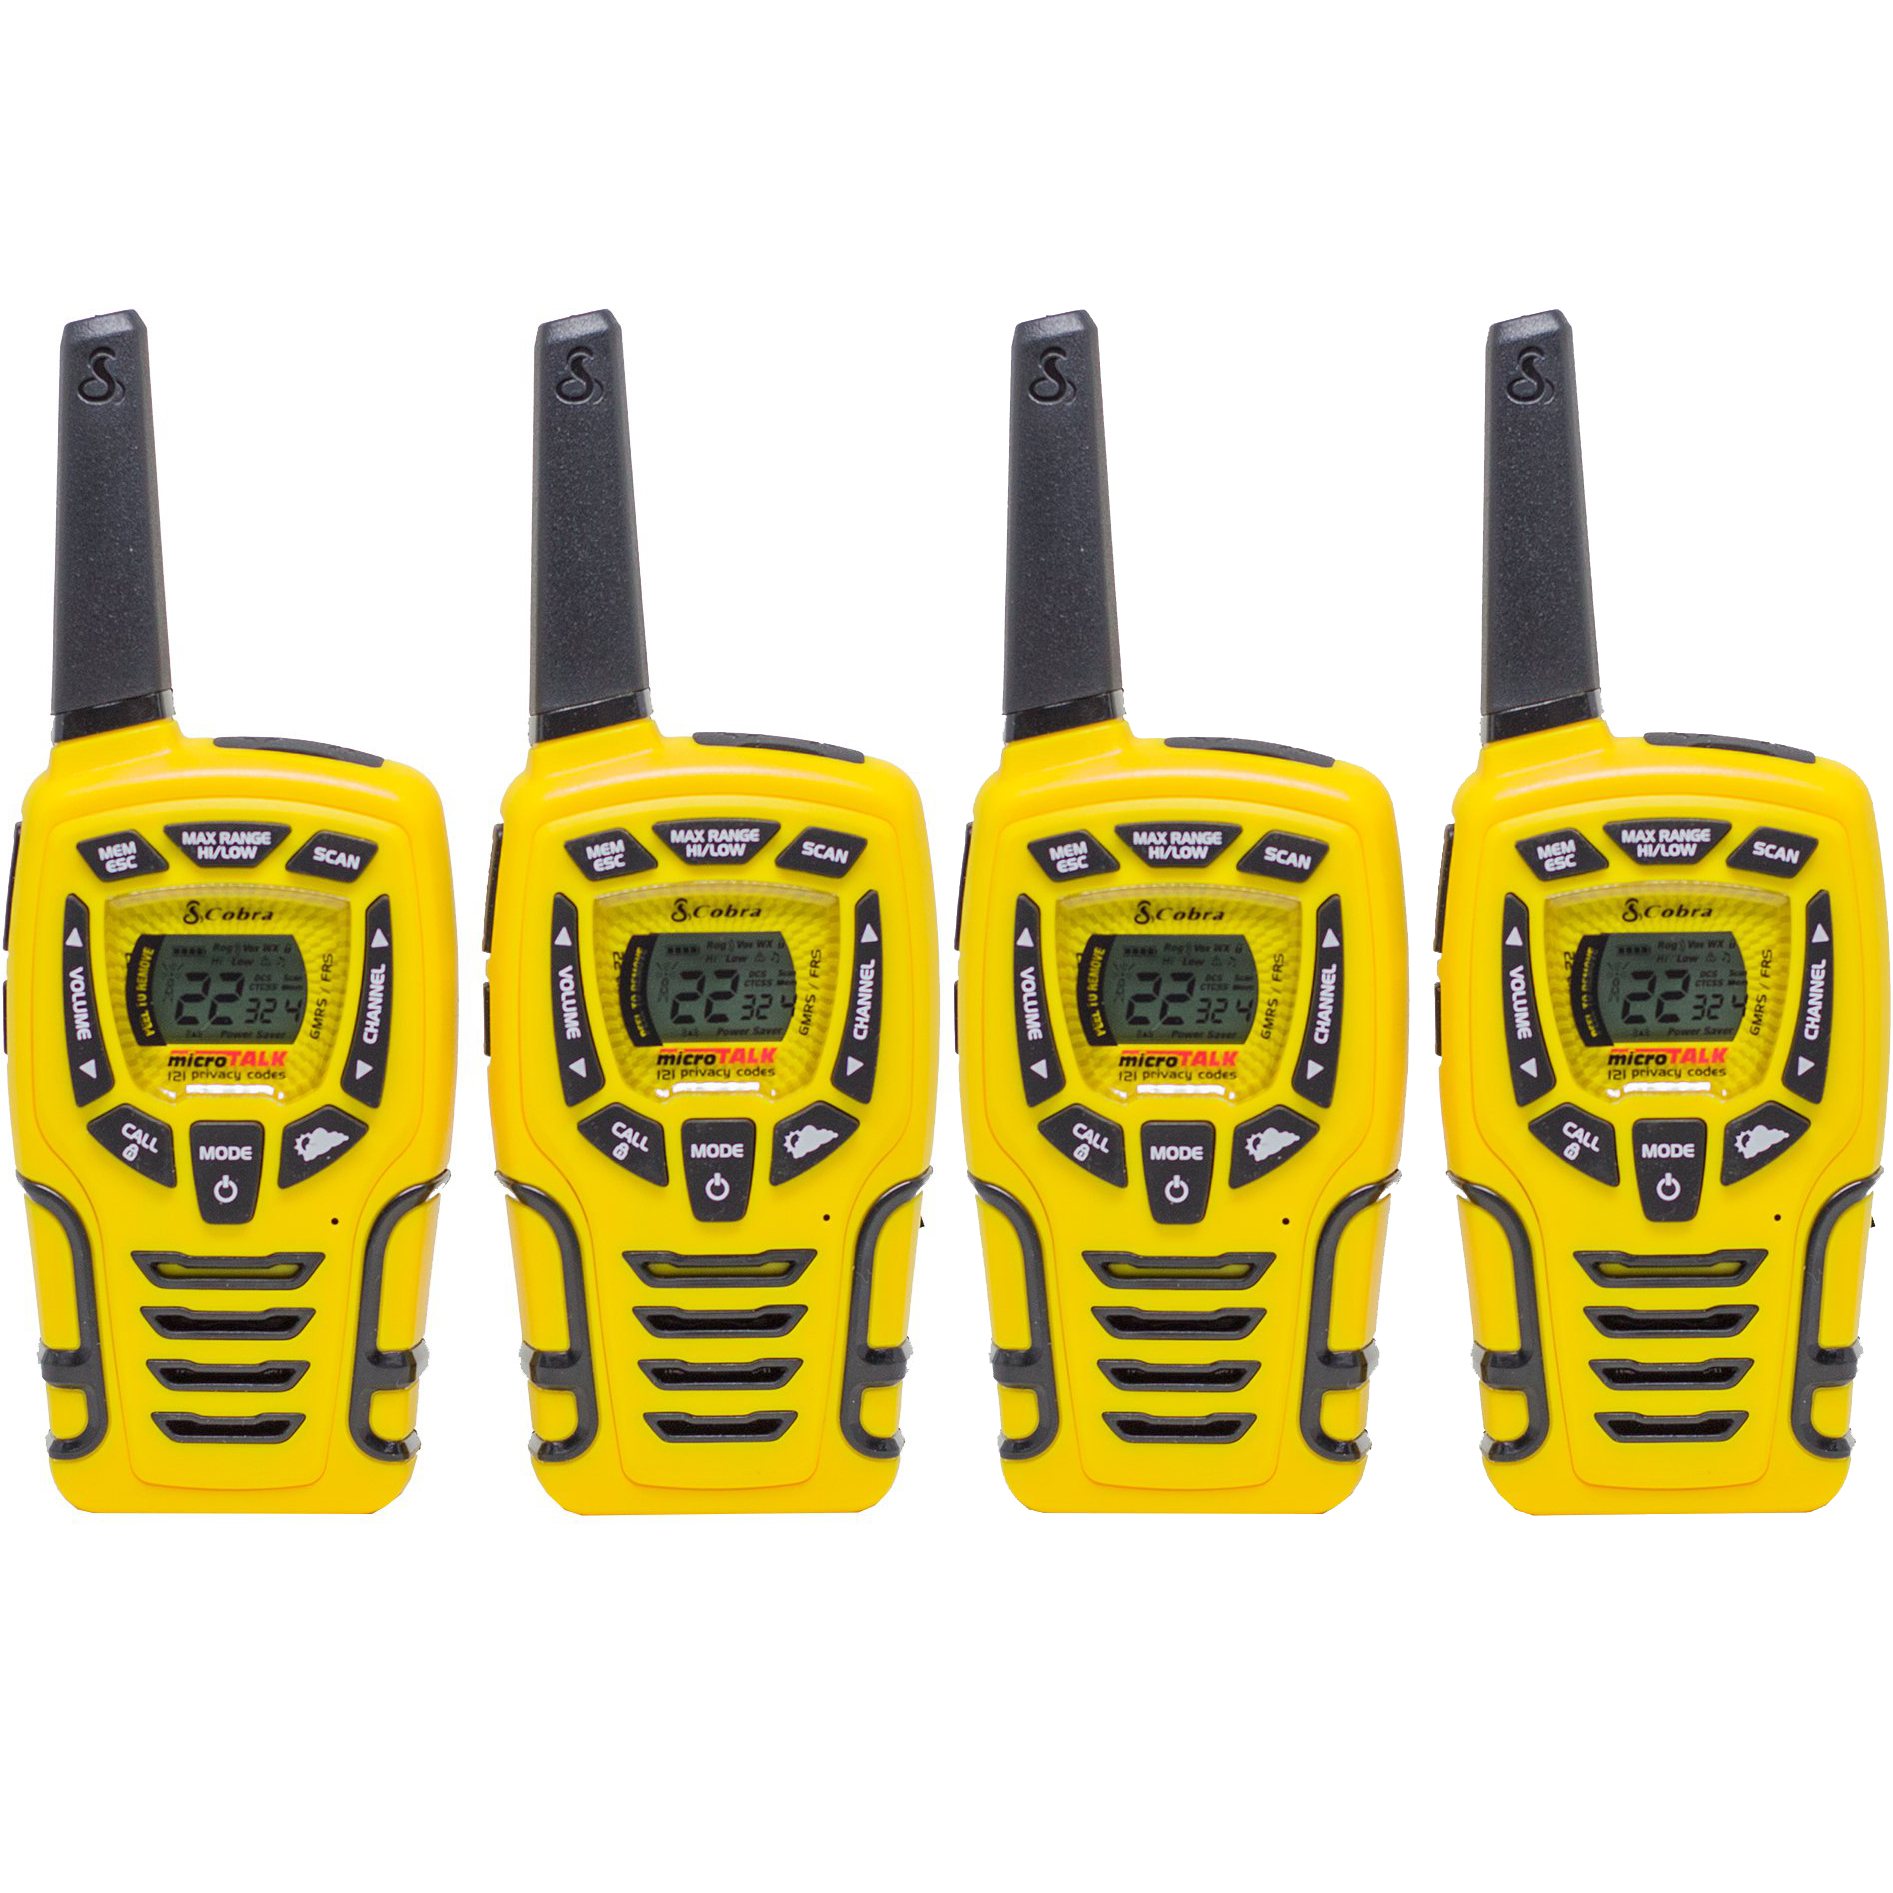 Cobra 28 Mile 22 Channel Walkie Talkie VOX NOAA Receiver Radios CX445 (2 Pairs)